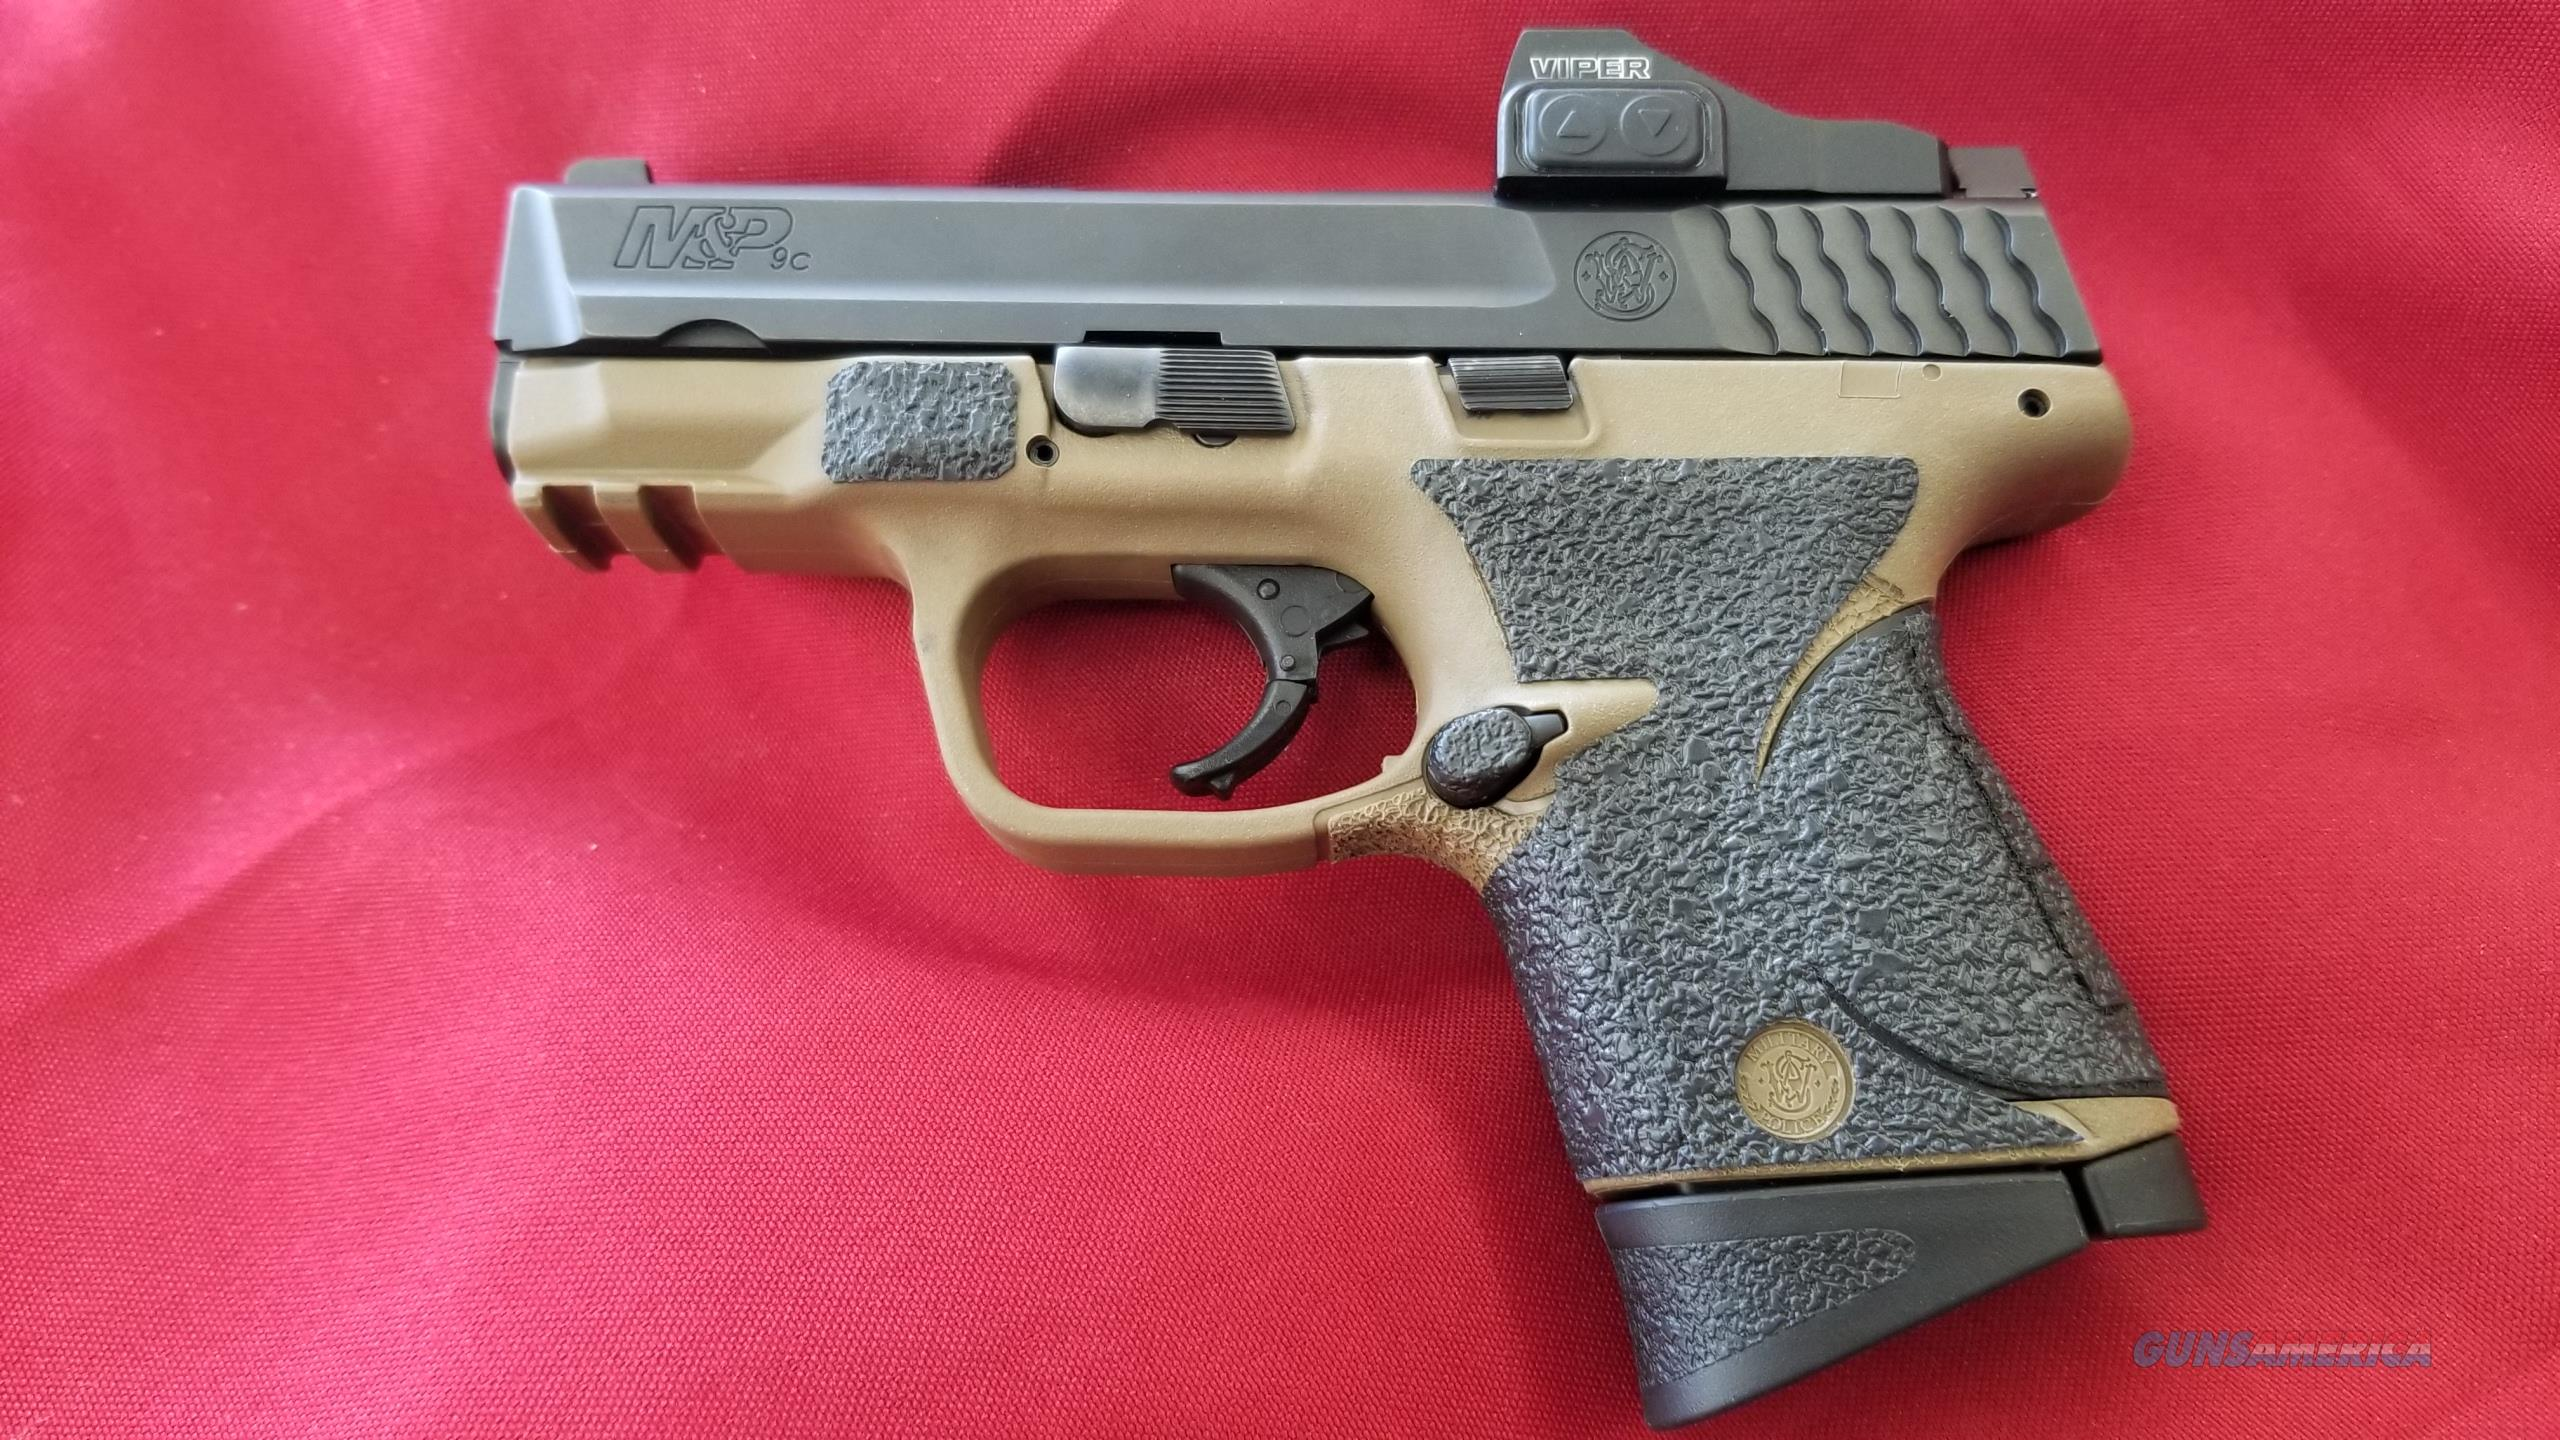 Used Smith & Wesson M&P 9c 9mm w/ Viper Sight  Guns > Pistols > Smith & Wesson Pistols - Autos > Polymer Frame